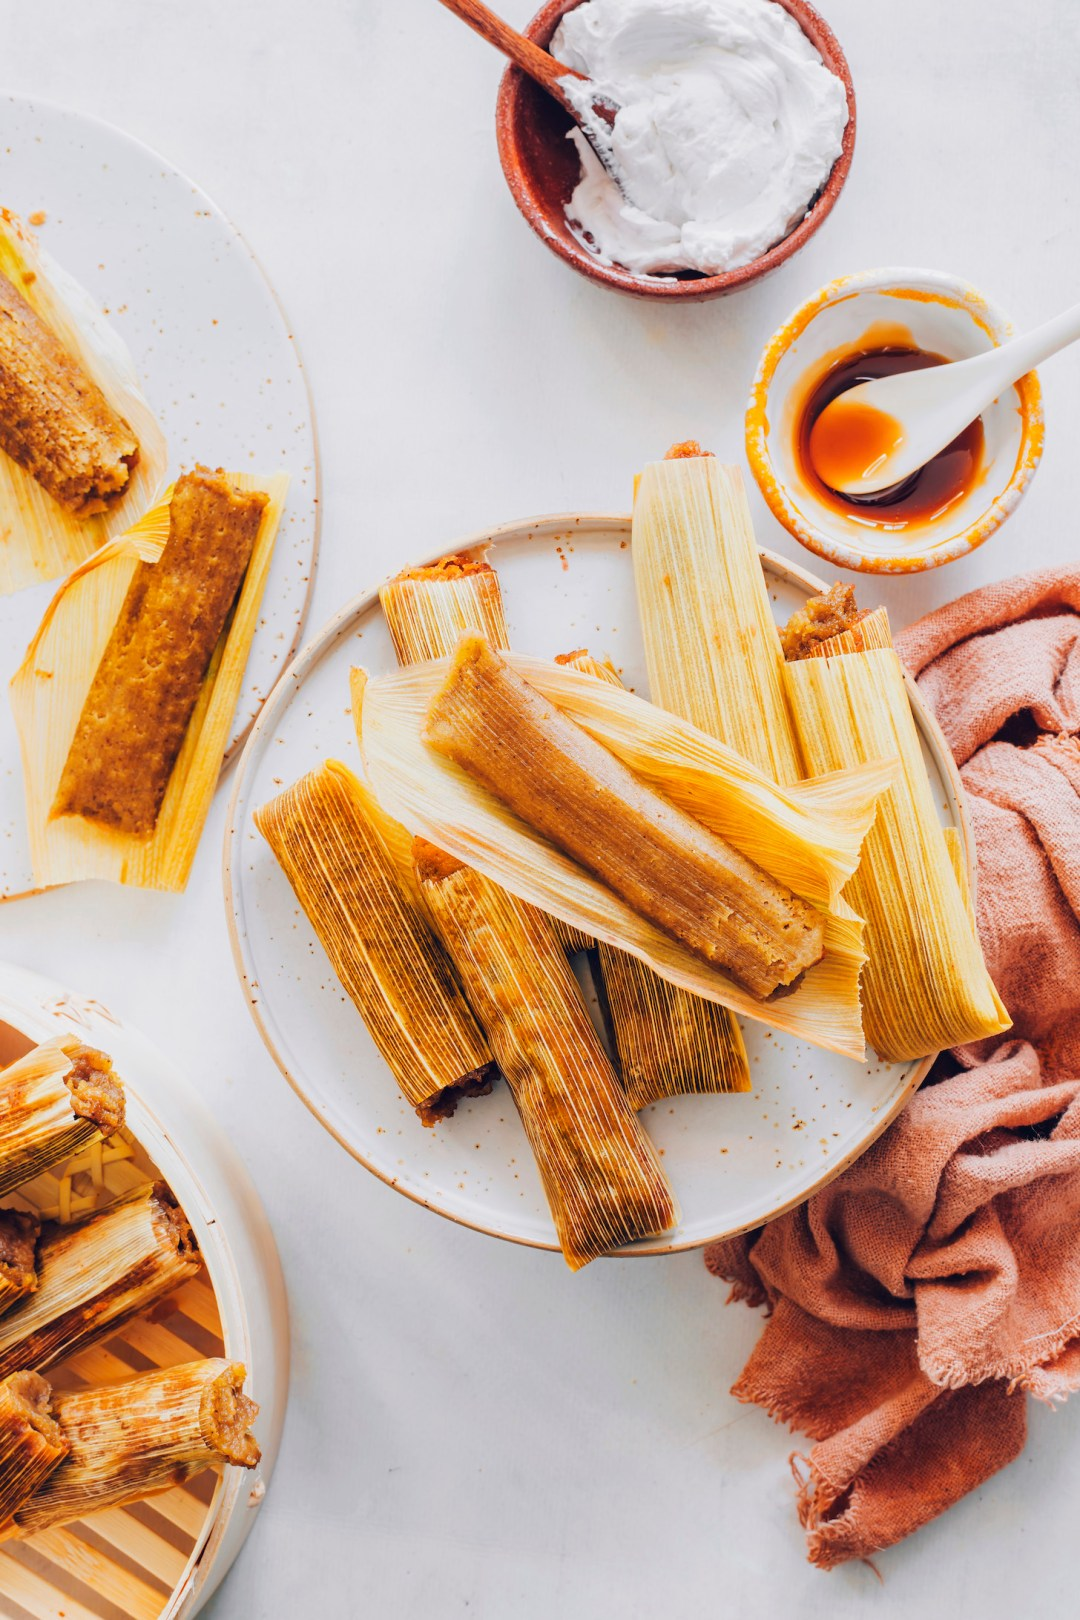 Plates of apple butter tamales in corn husks